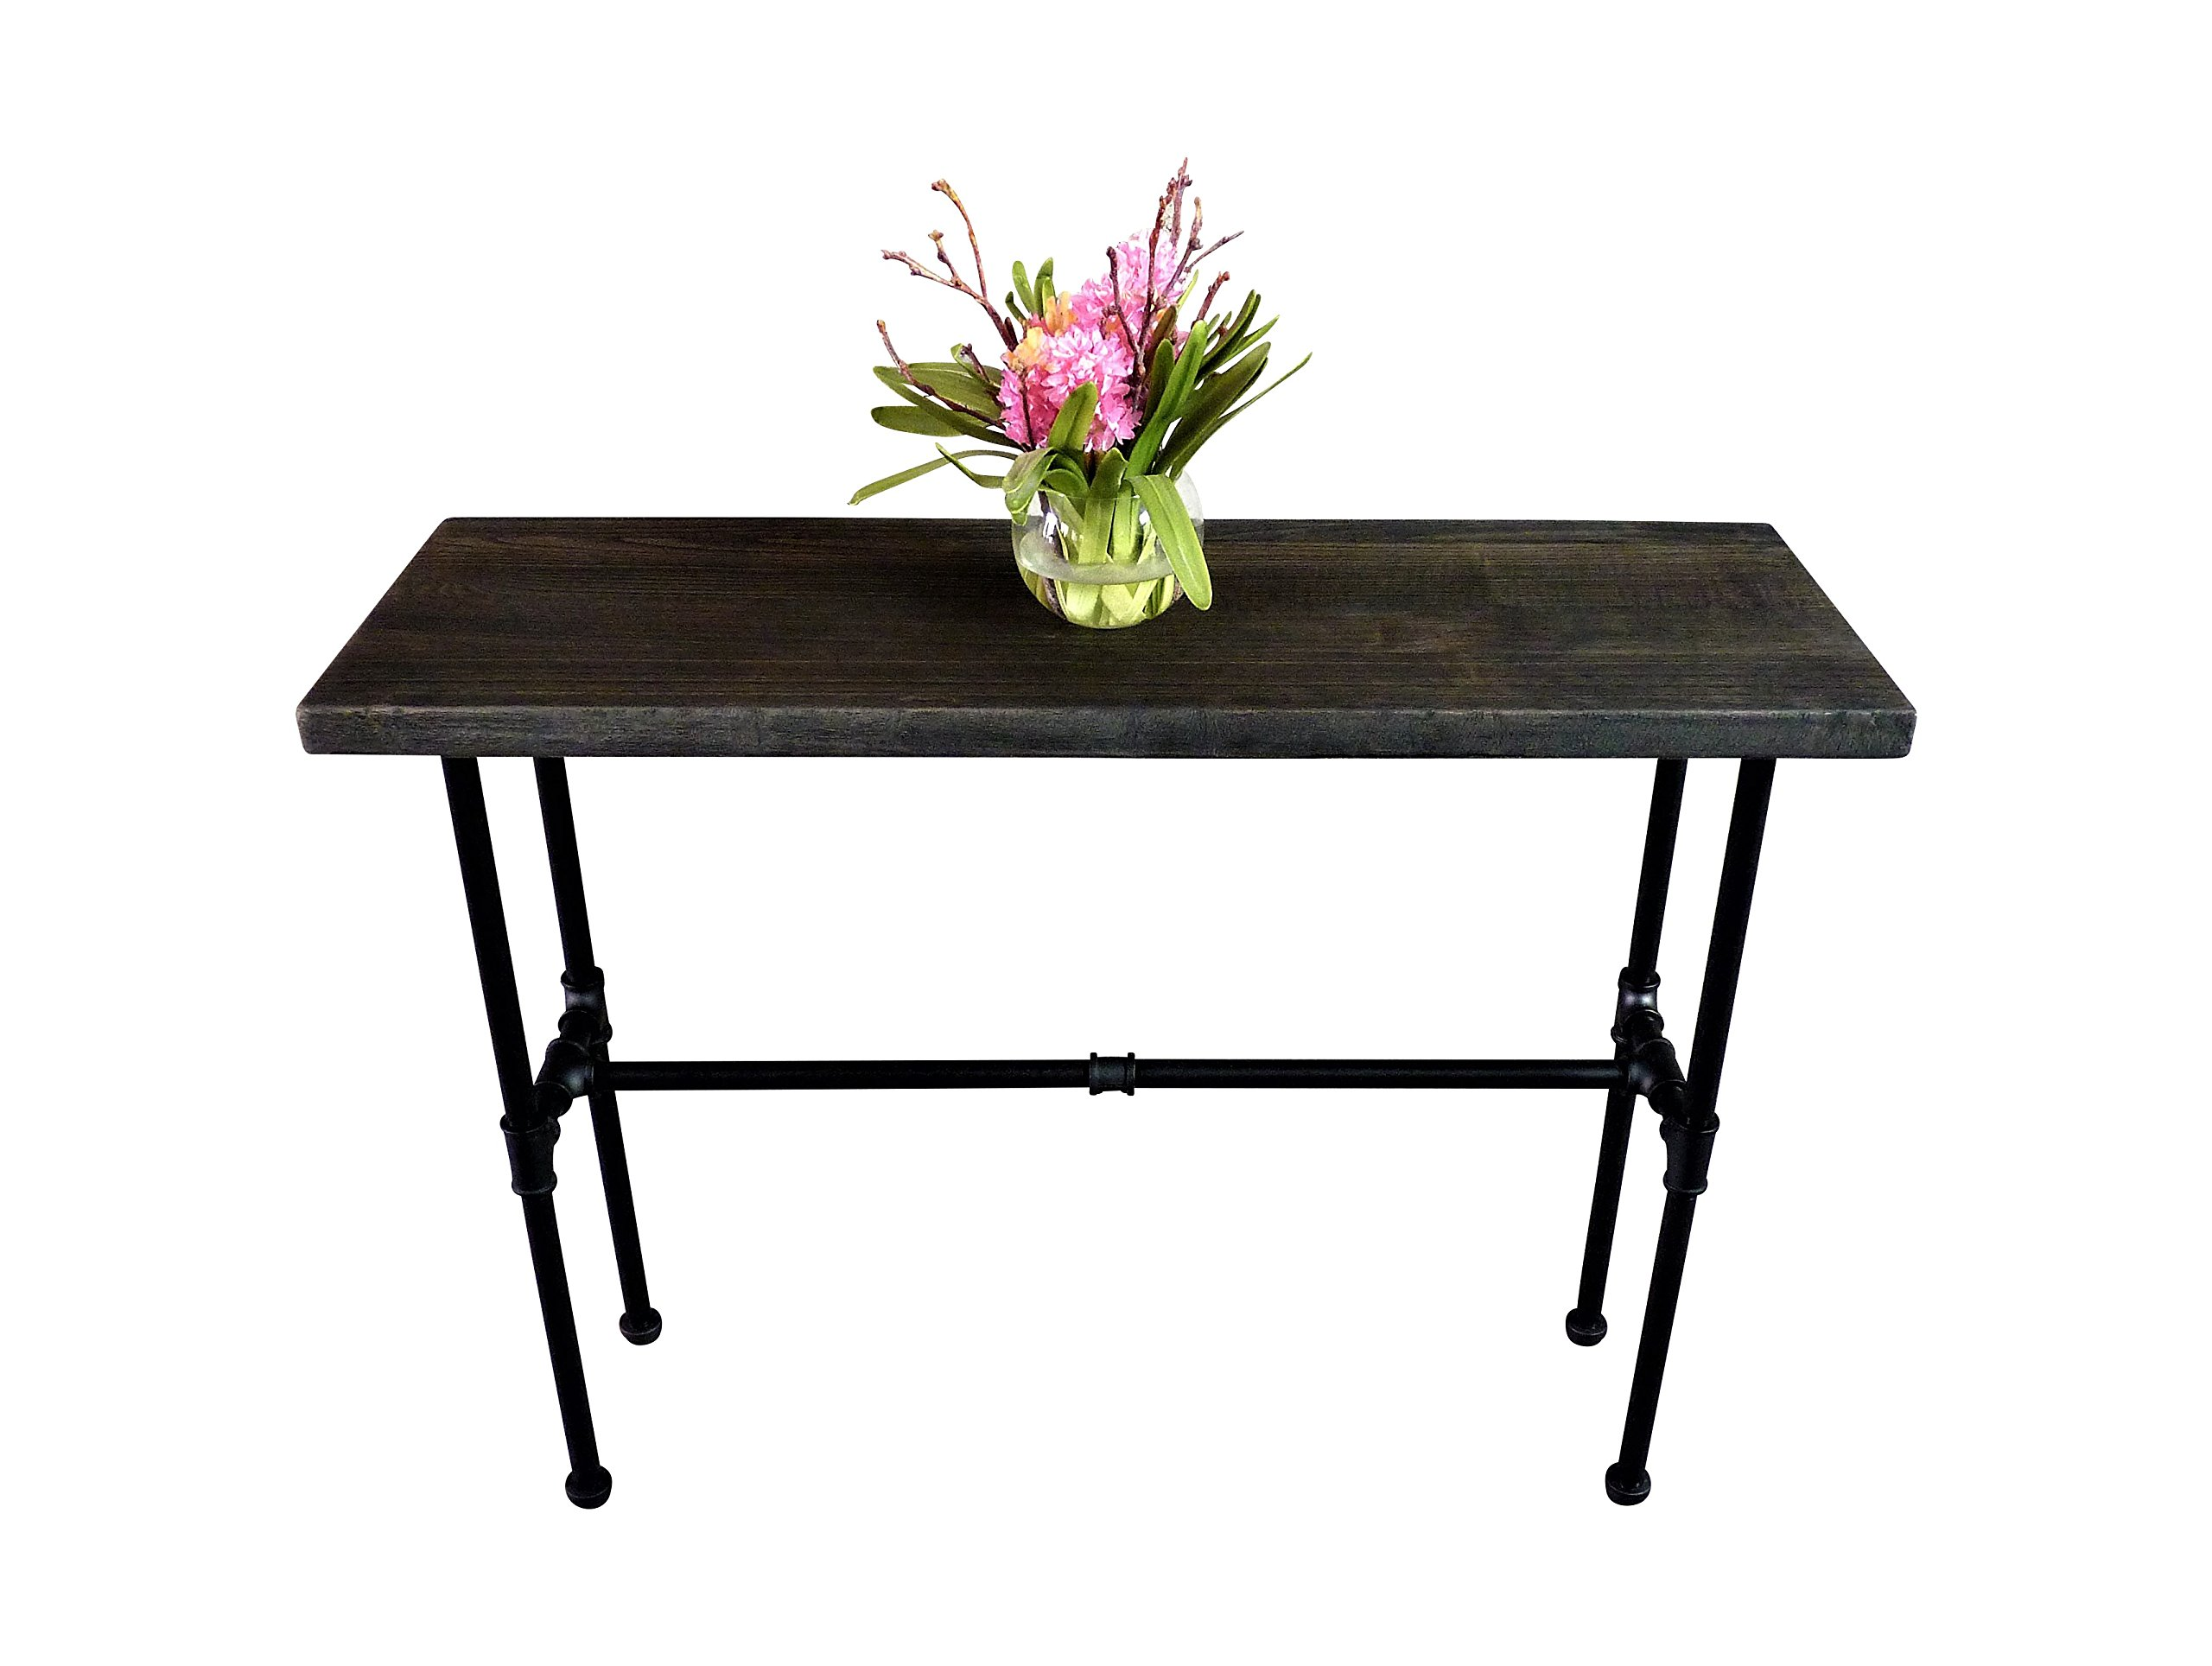 FURNITURE PIPELINE Corvallis Industrial Chic Console Table by FURNITURE PIPELINE